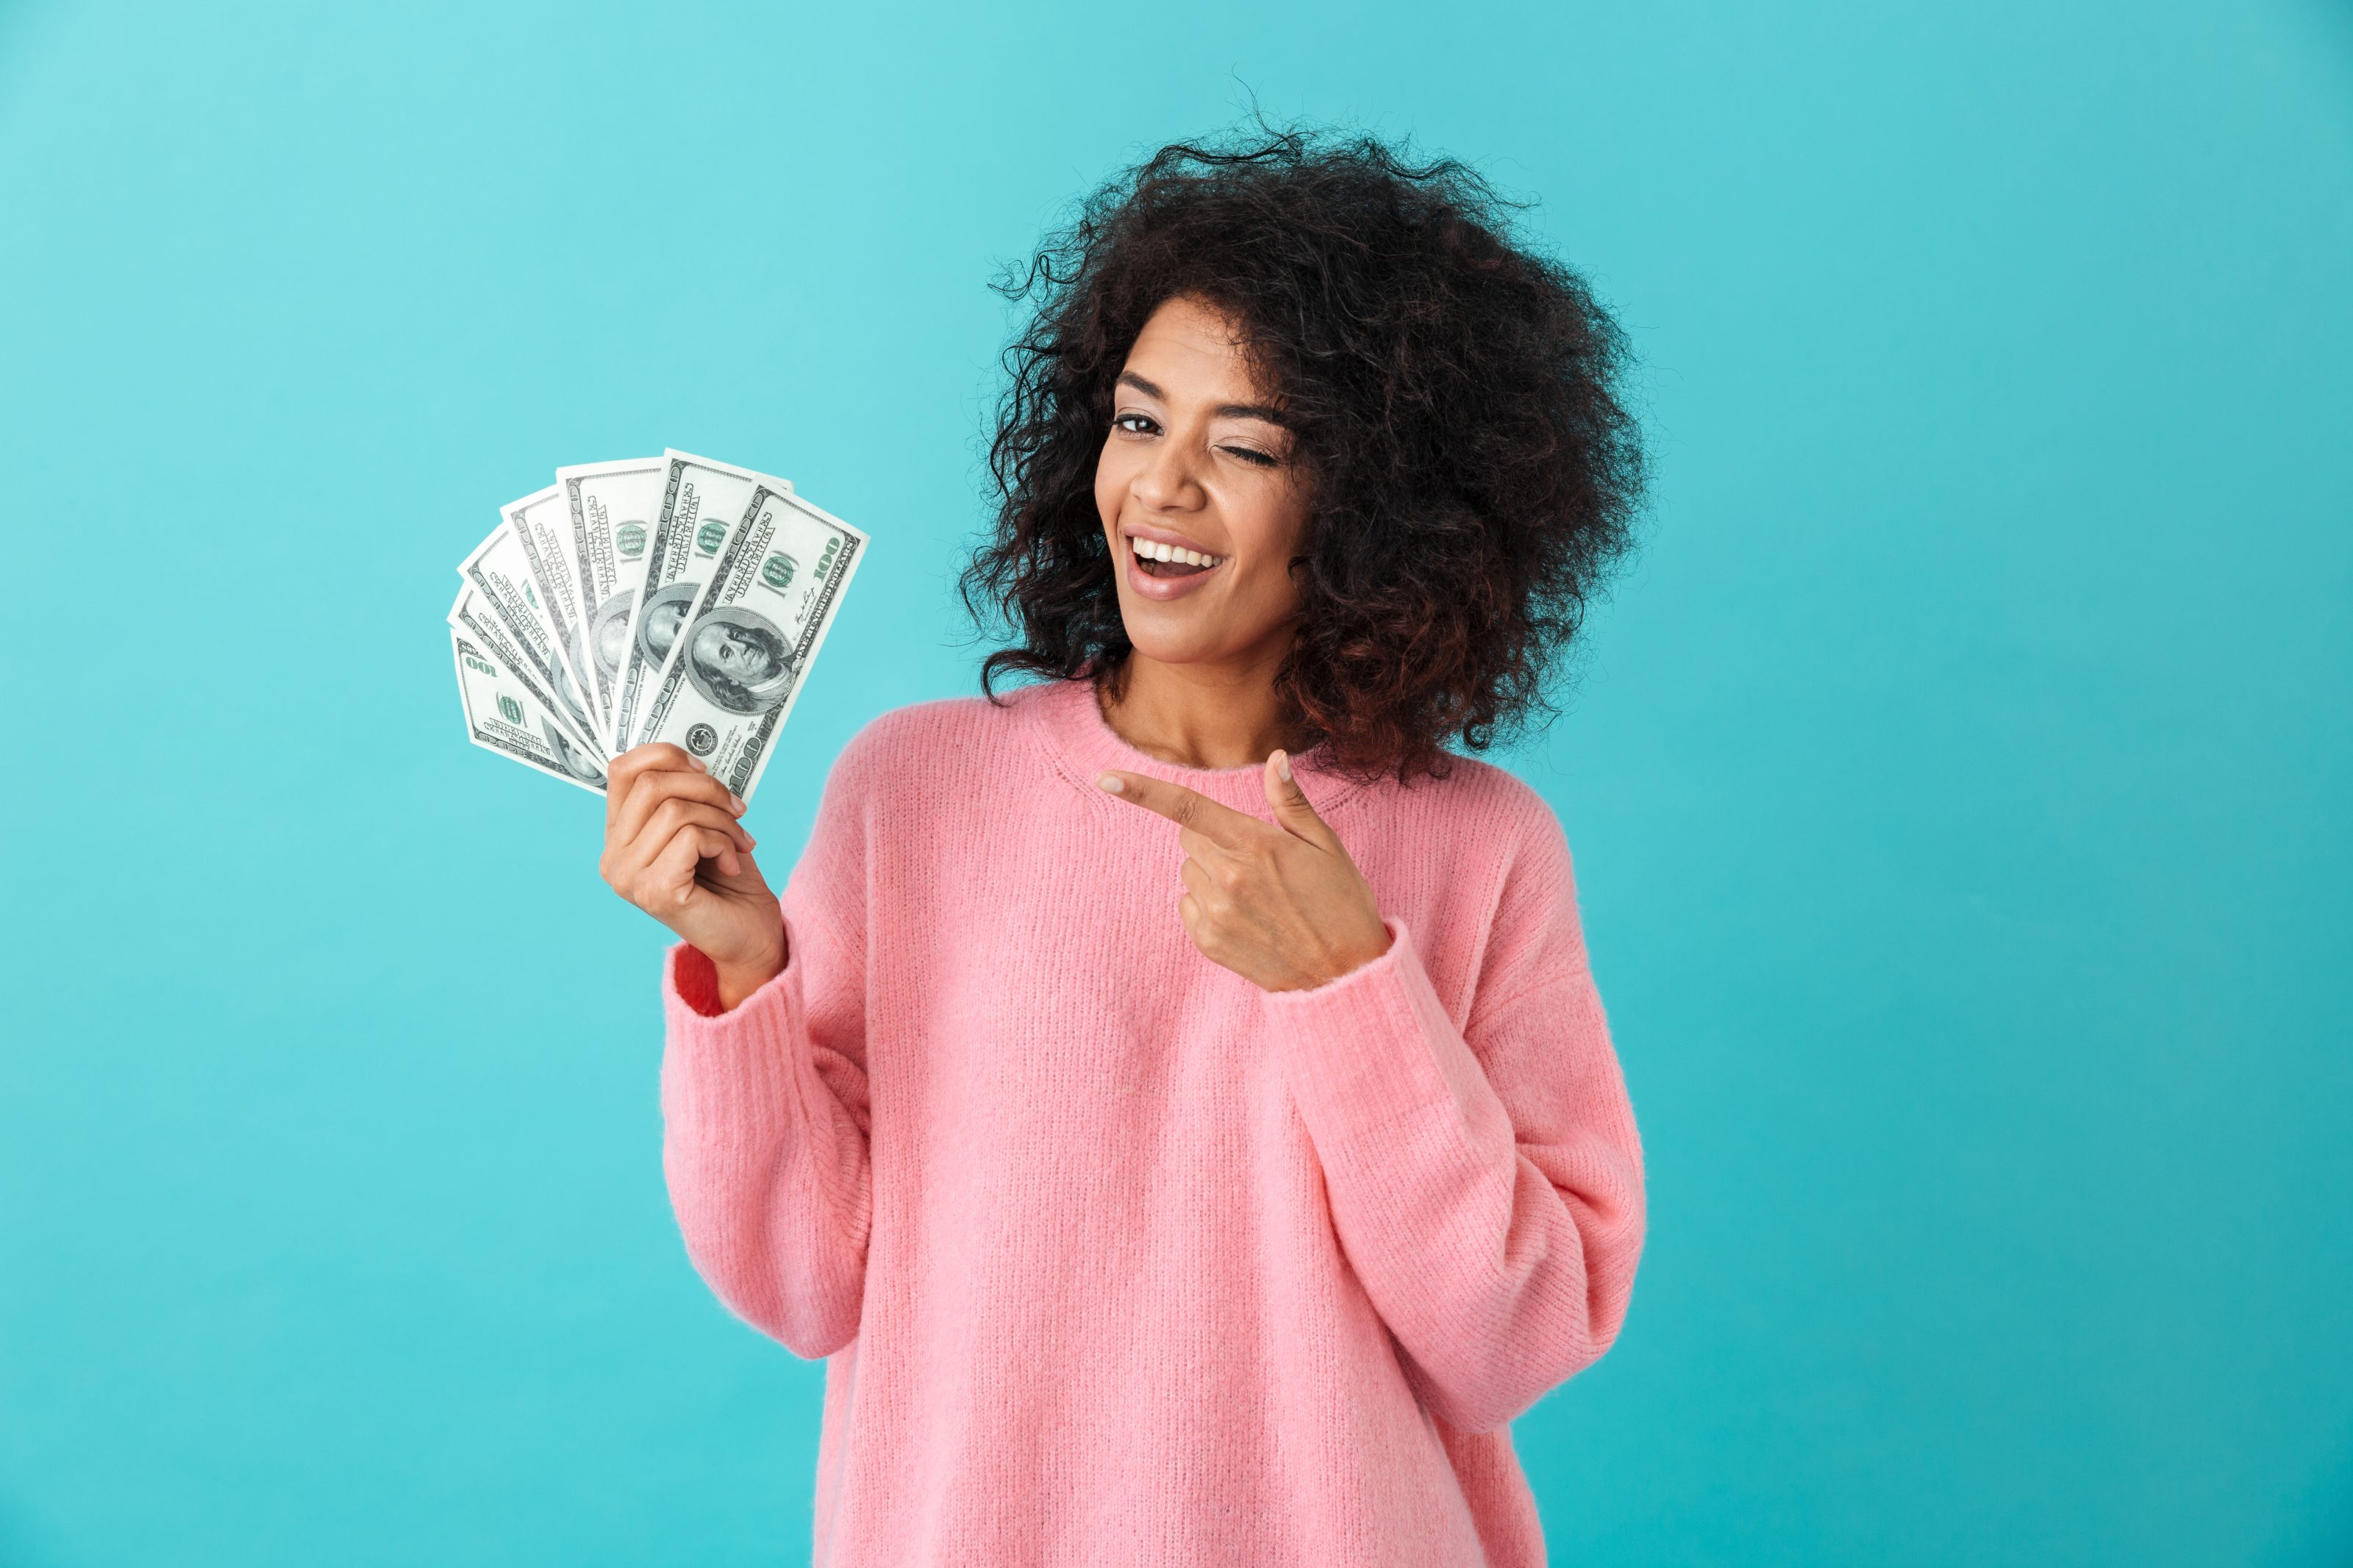 Portrait of american successful woman 20s with afro hairstyle holding lots of money dollar banknotes, isolated over blue background